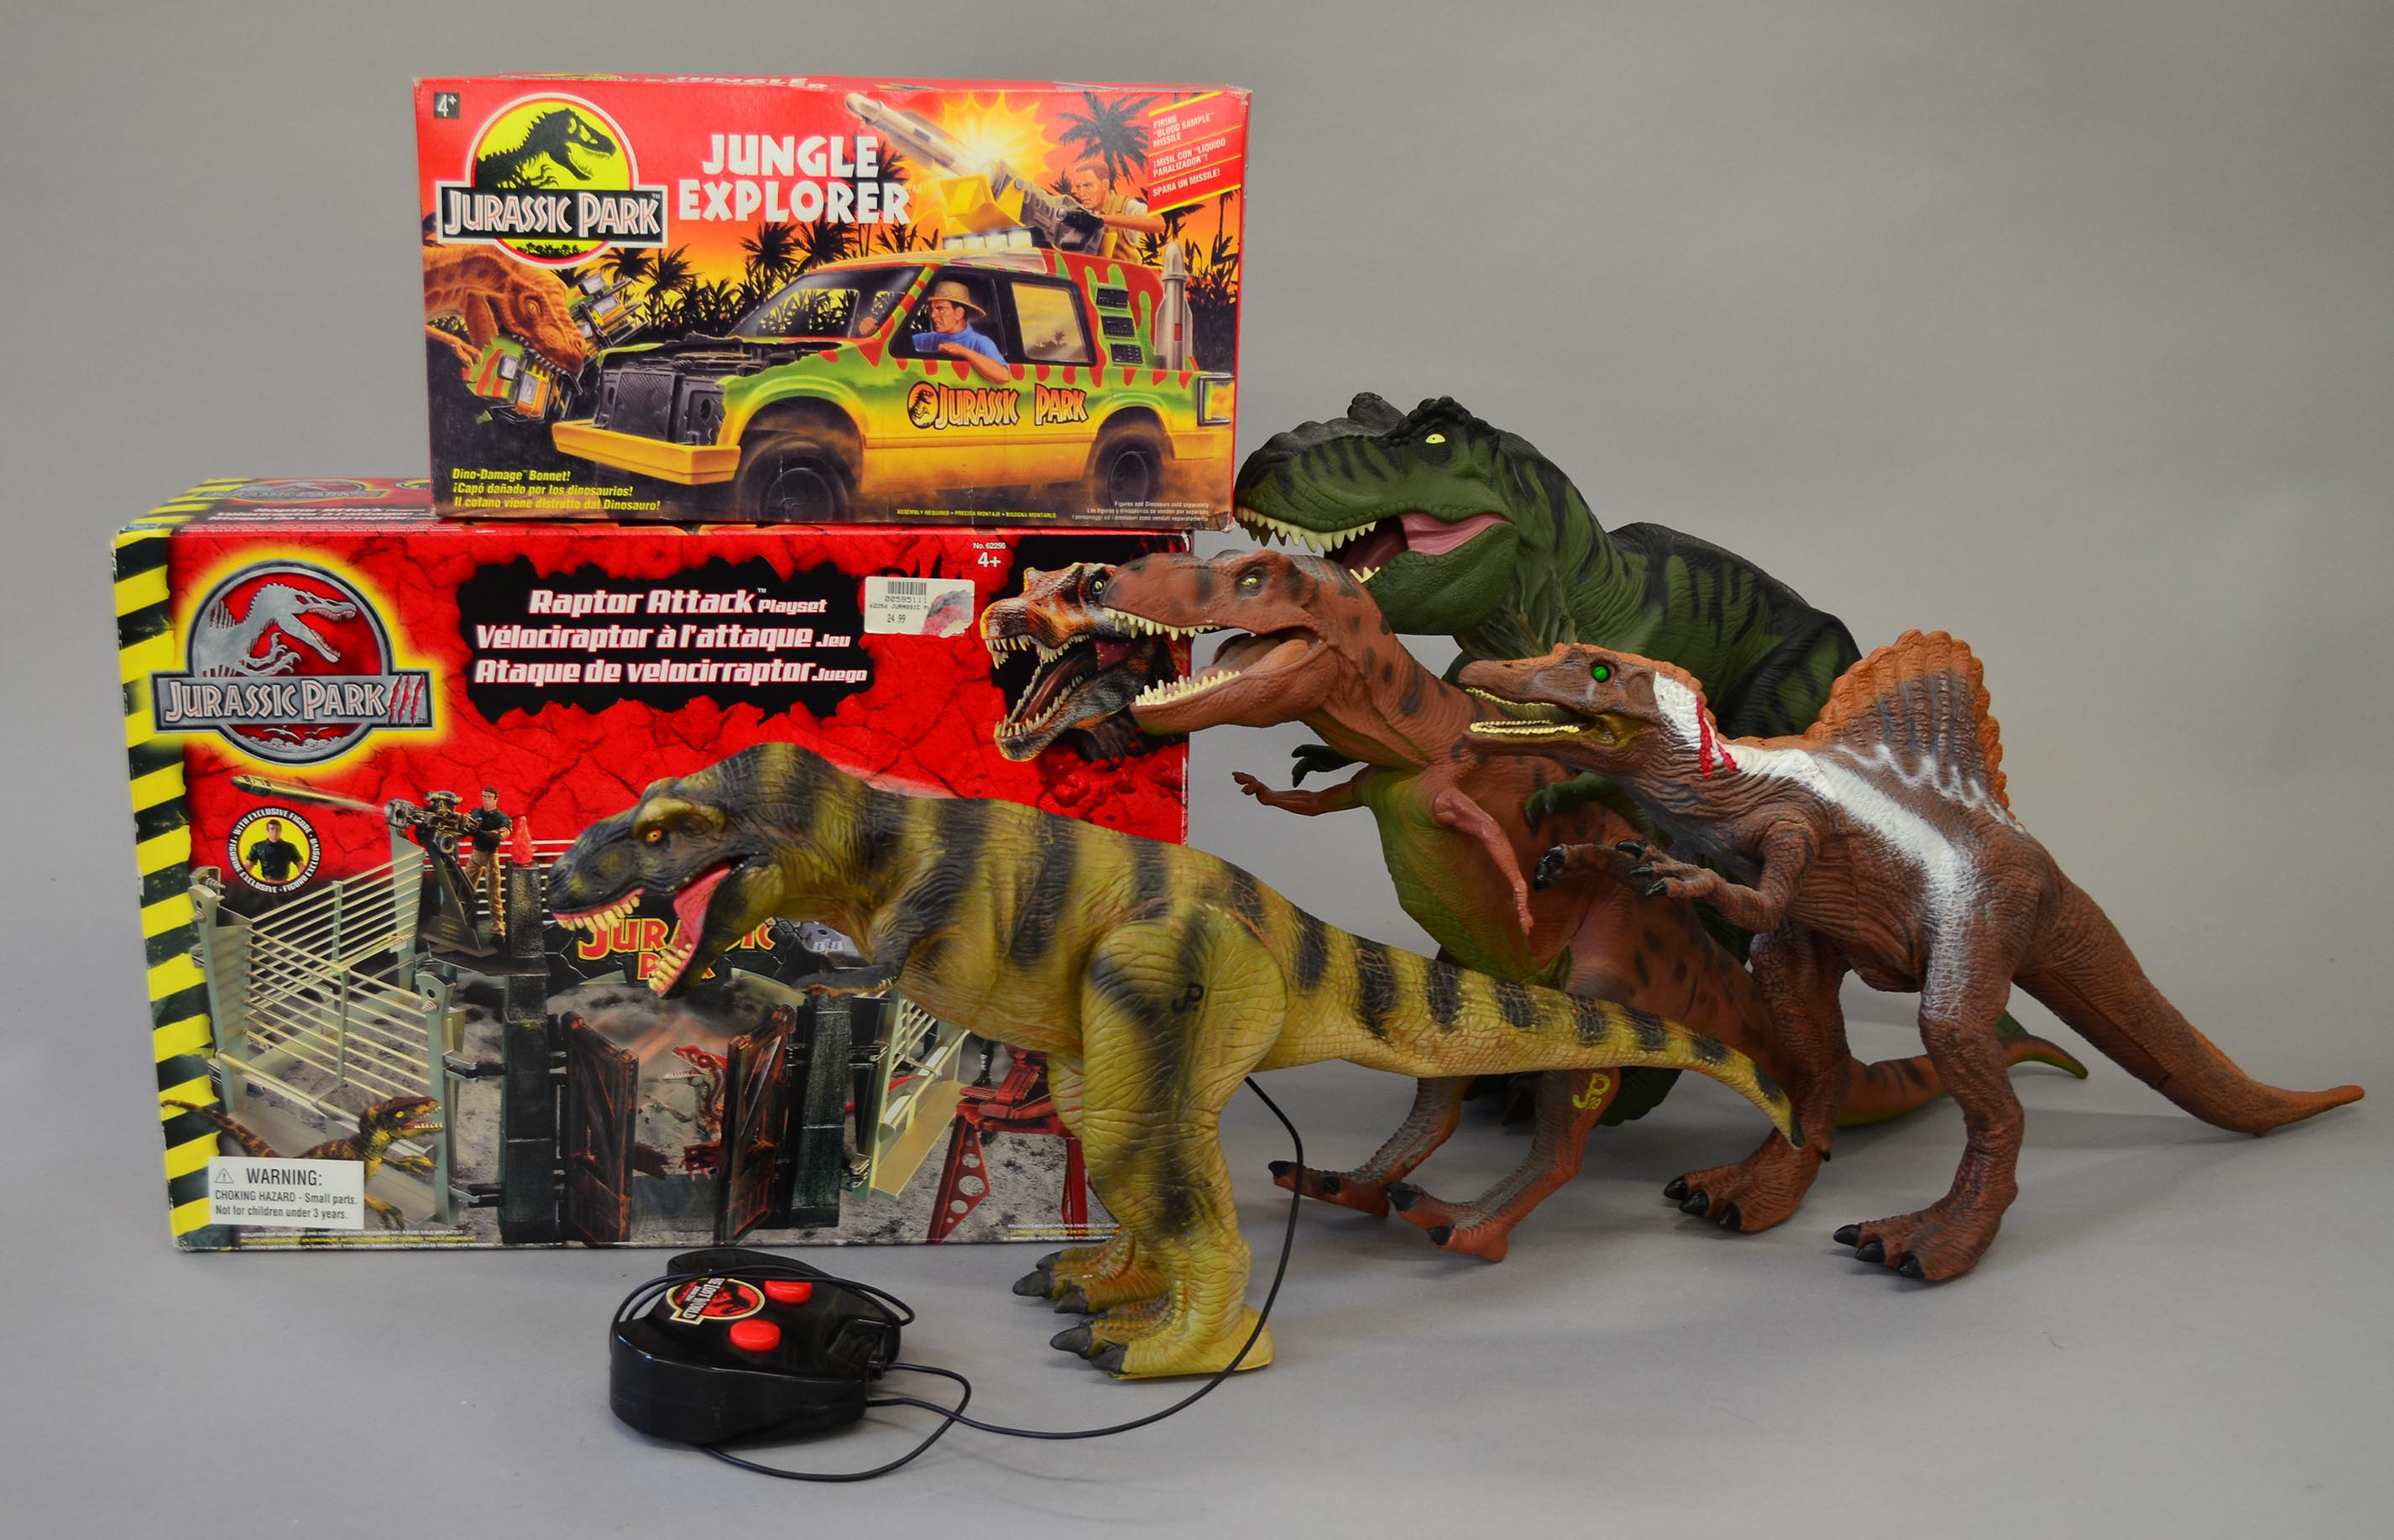 Jurassic Park Toys : Good quantity of jurassic park toys boxed kenner jungle